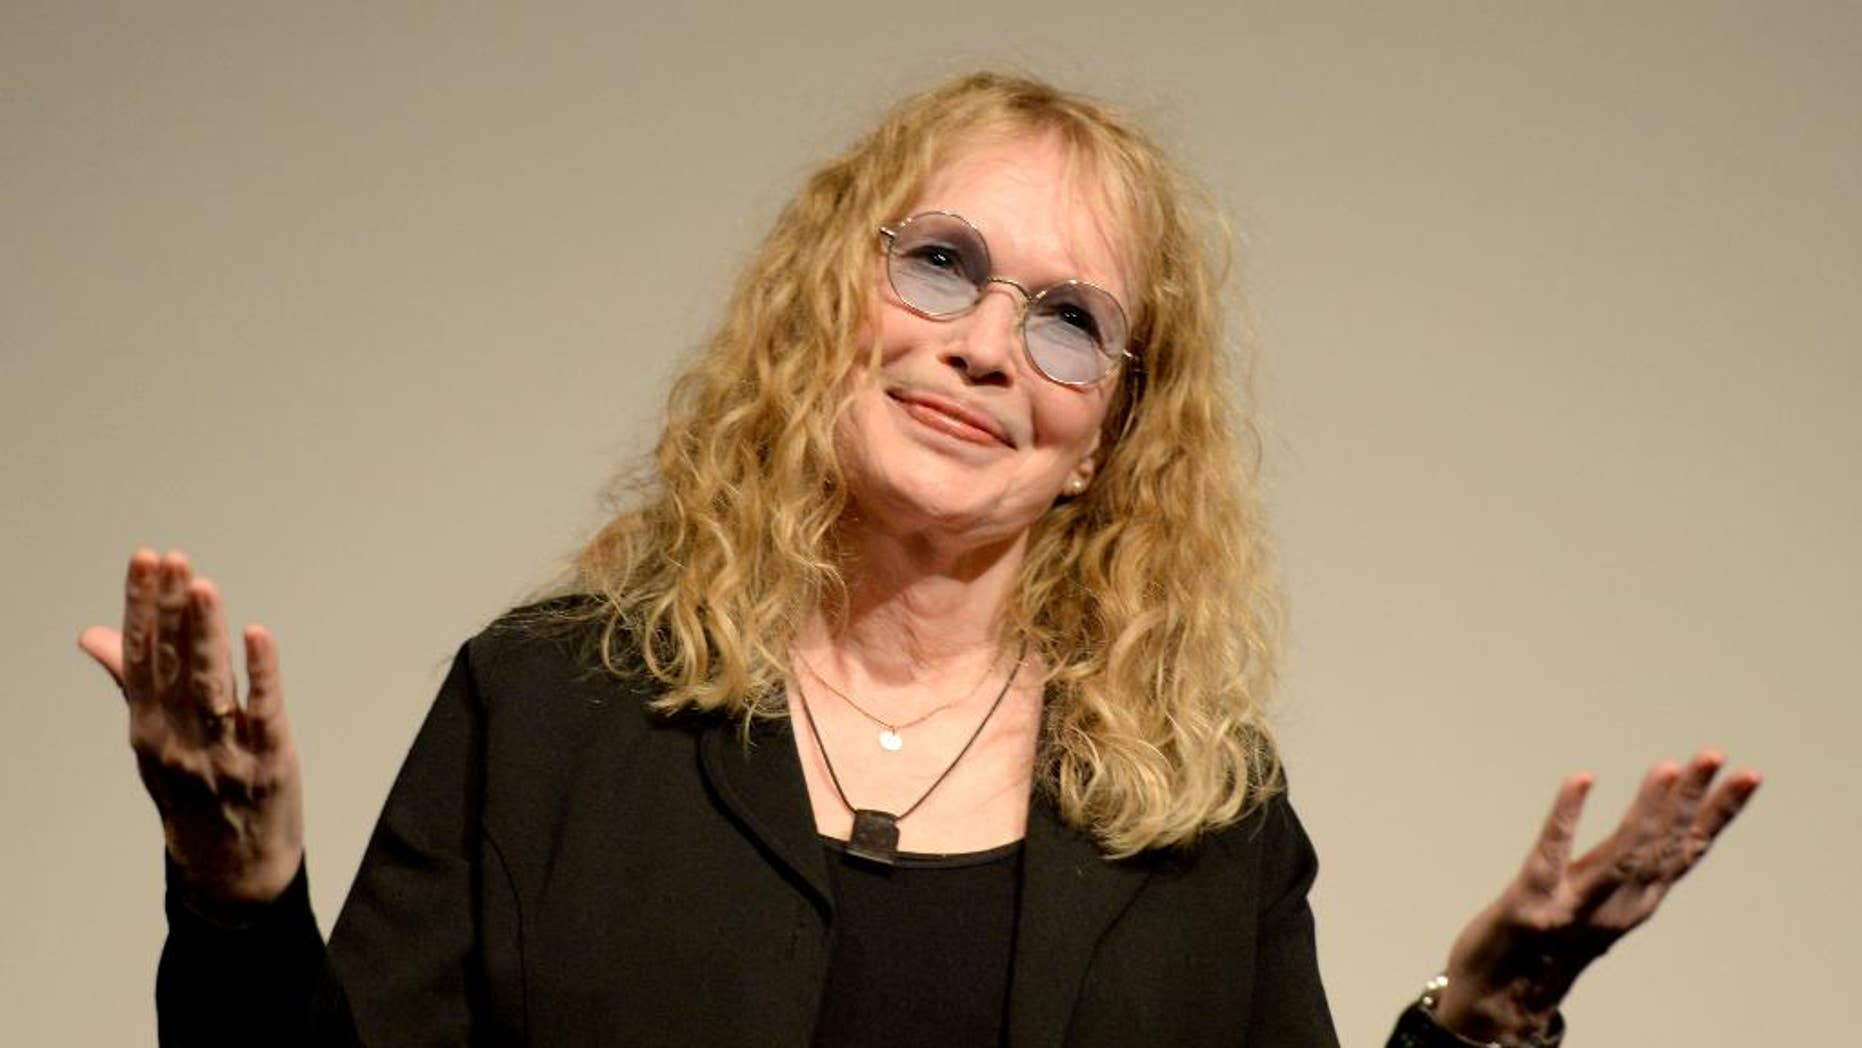 """FILE - In this Aug. 8, 2014 file photo, actress Mia Farrow gestures as she receives the """"Leopard Club Award"""" at the 67th Locarno International Film Festival in Locarno Switzerland. Farrow, 69, has returned to Broadway for the first time in 16 years to perform in A.R. Gurney's play """"Love Letters,"""" in which would-be lovers read aloud letters exchanged over a lifetime. (AP Photo/Keystone, Urs Flueeler, File)"""